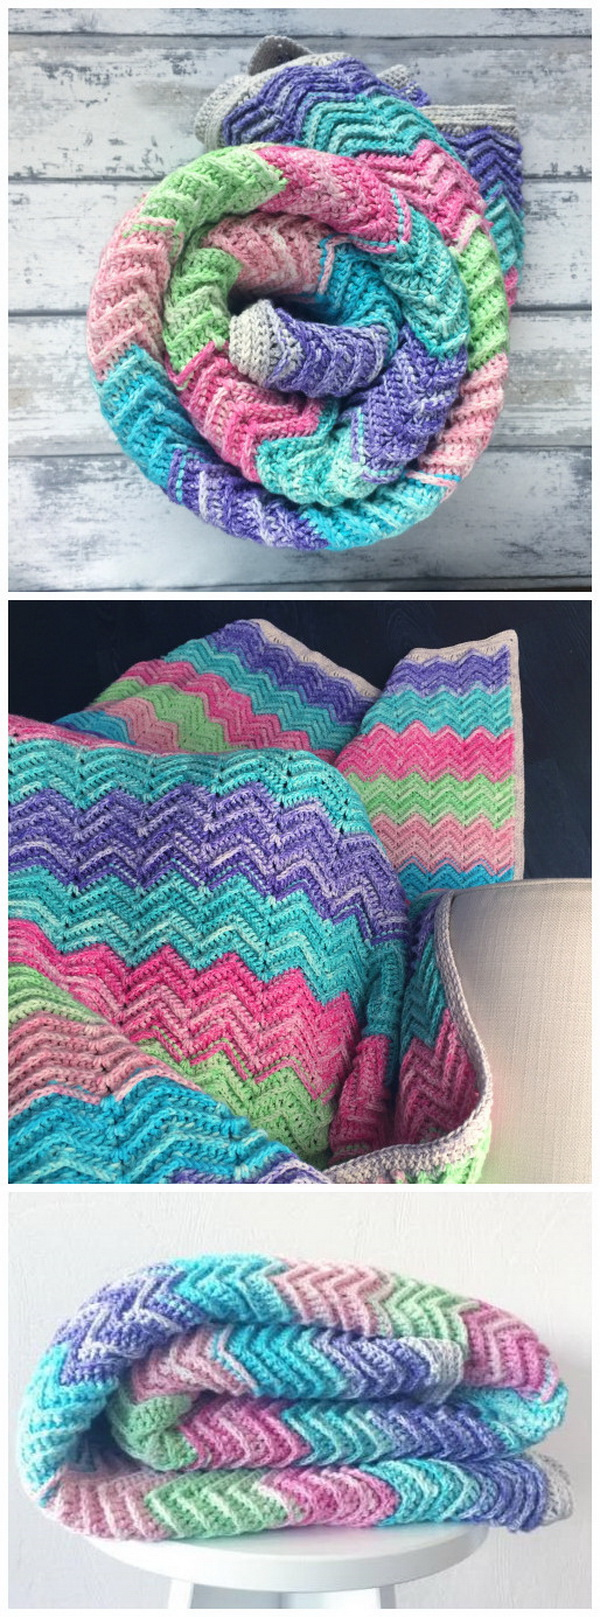 Quick And Easy Crochet Blanket Patterns For Beginners: Textured Chevron Blanket – Free Crochet Pattern.